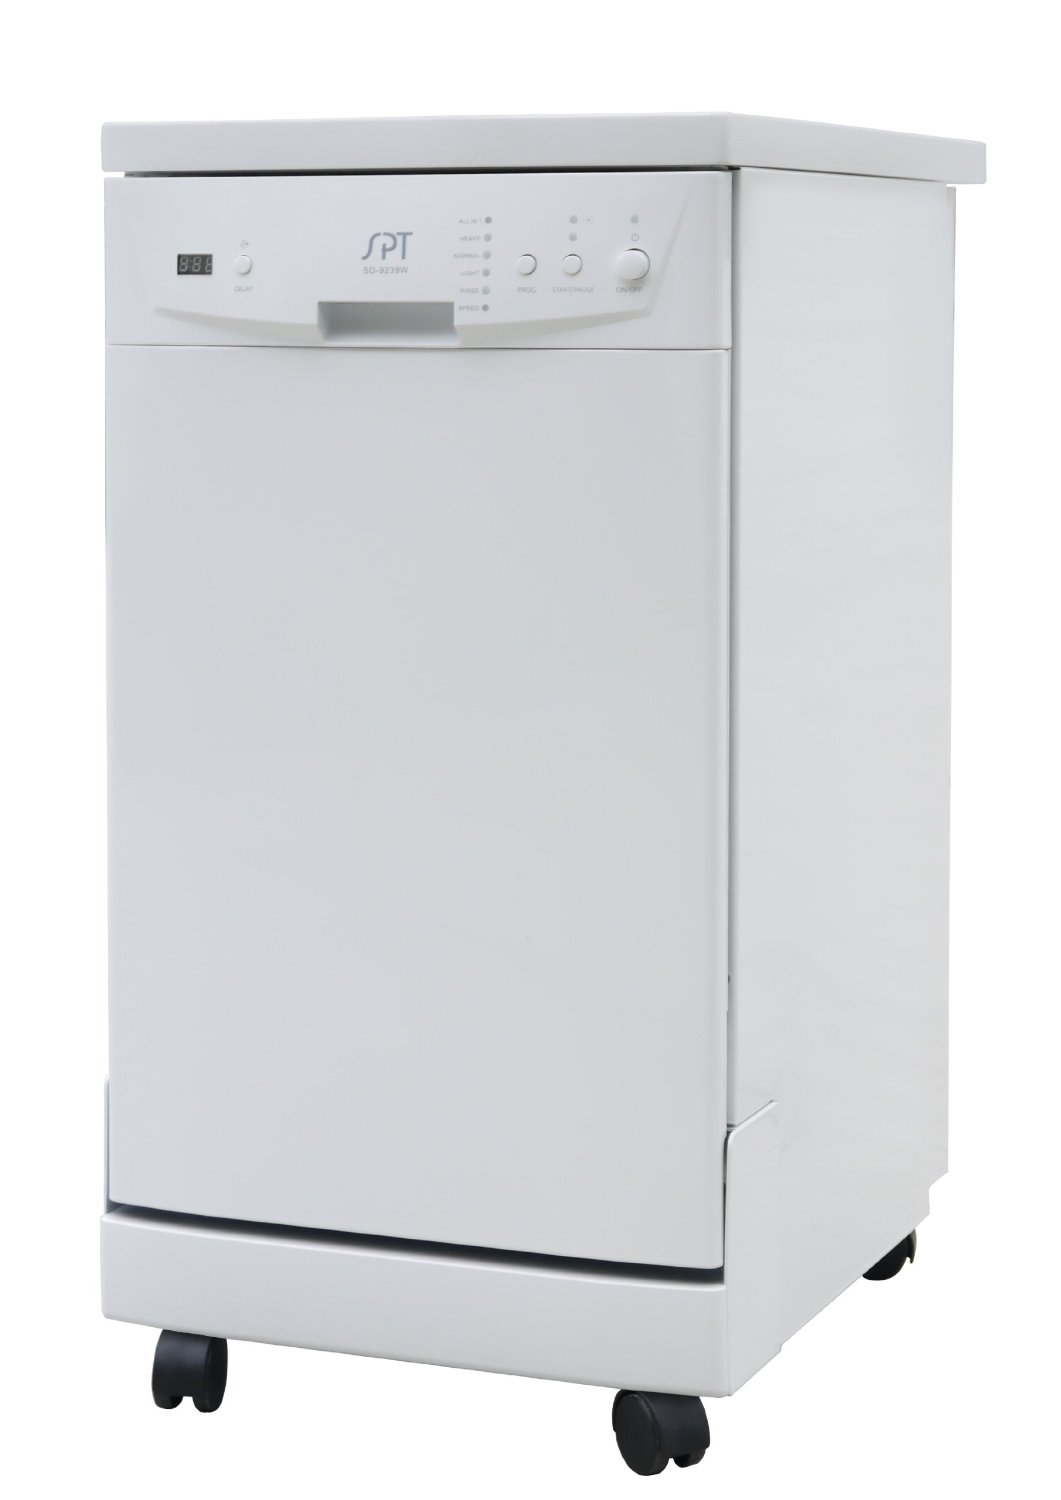 SPT SD-9241W 18-Inch Energy Star Portable Dishwasher With Eight Standard Place Settings – 2 Color Options